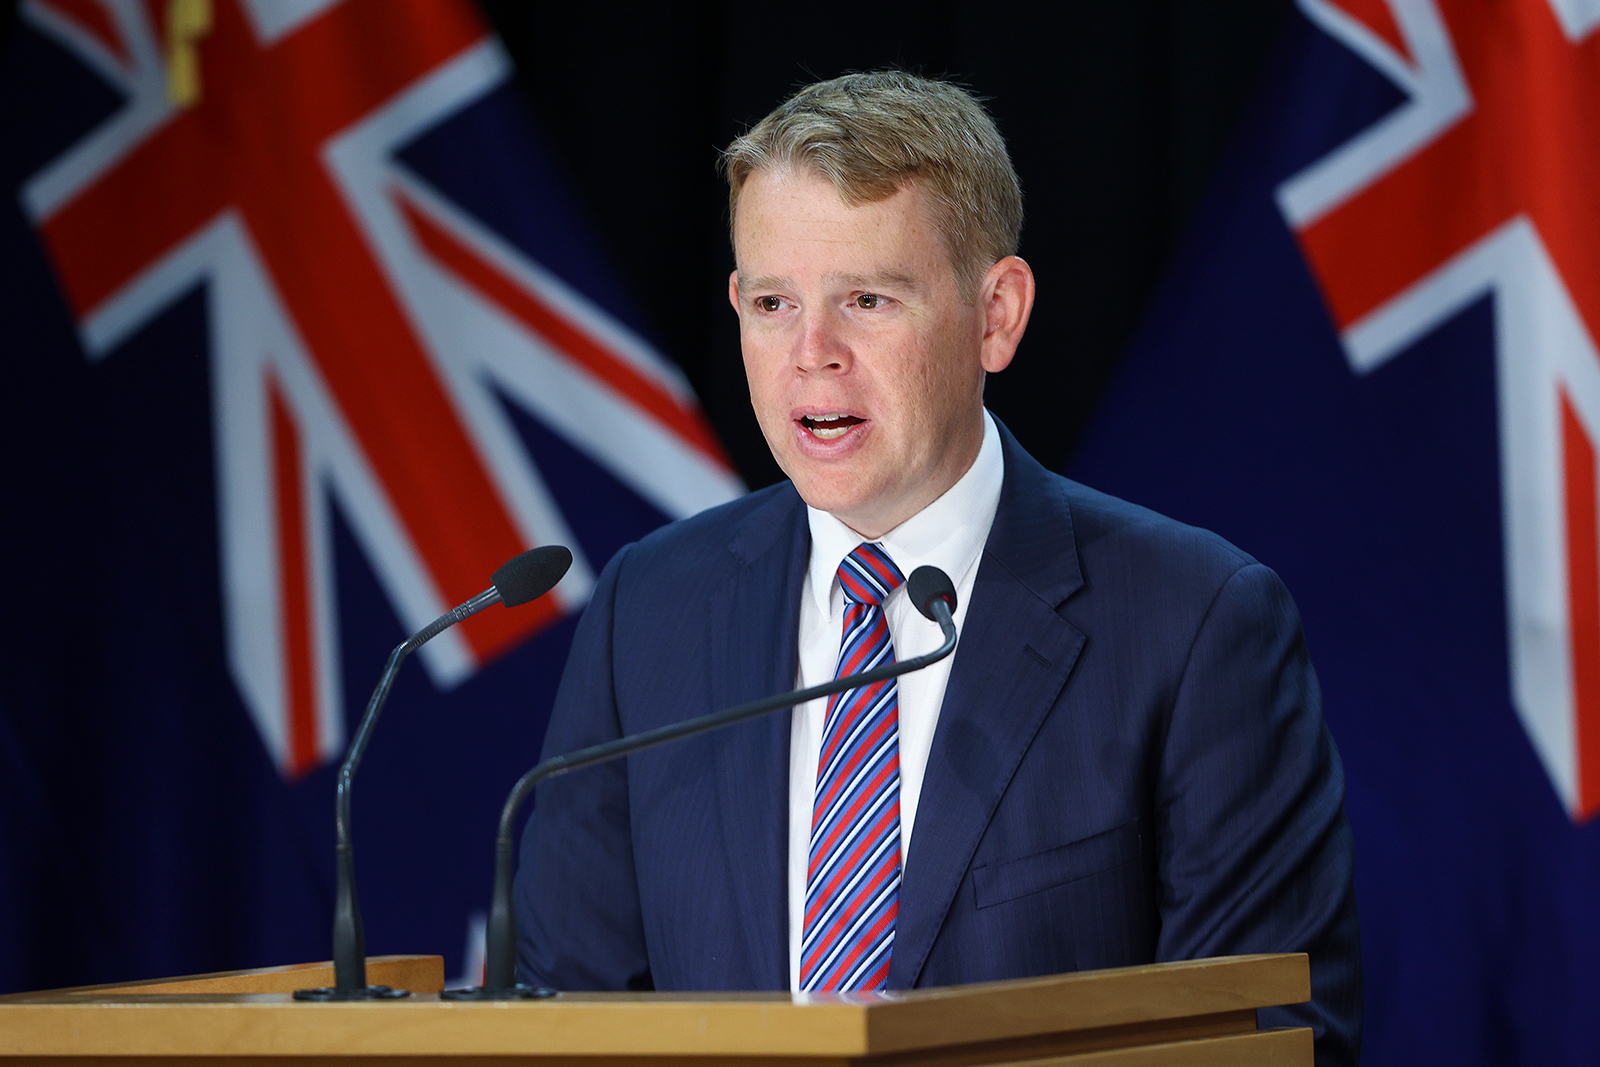 Minister for Covid-19 Response Chris Hipkins speaks during a news conference at Parliament in Wellington, New Zealand, on January 24.